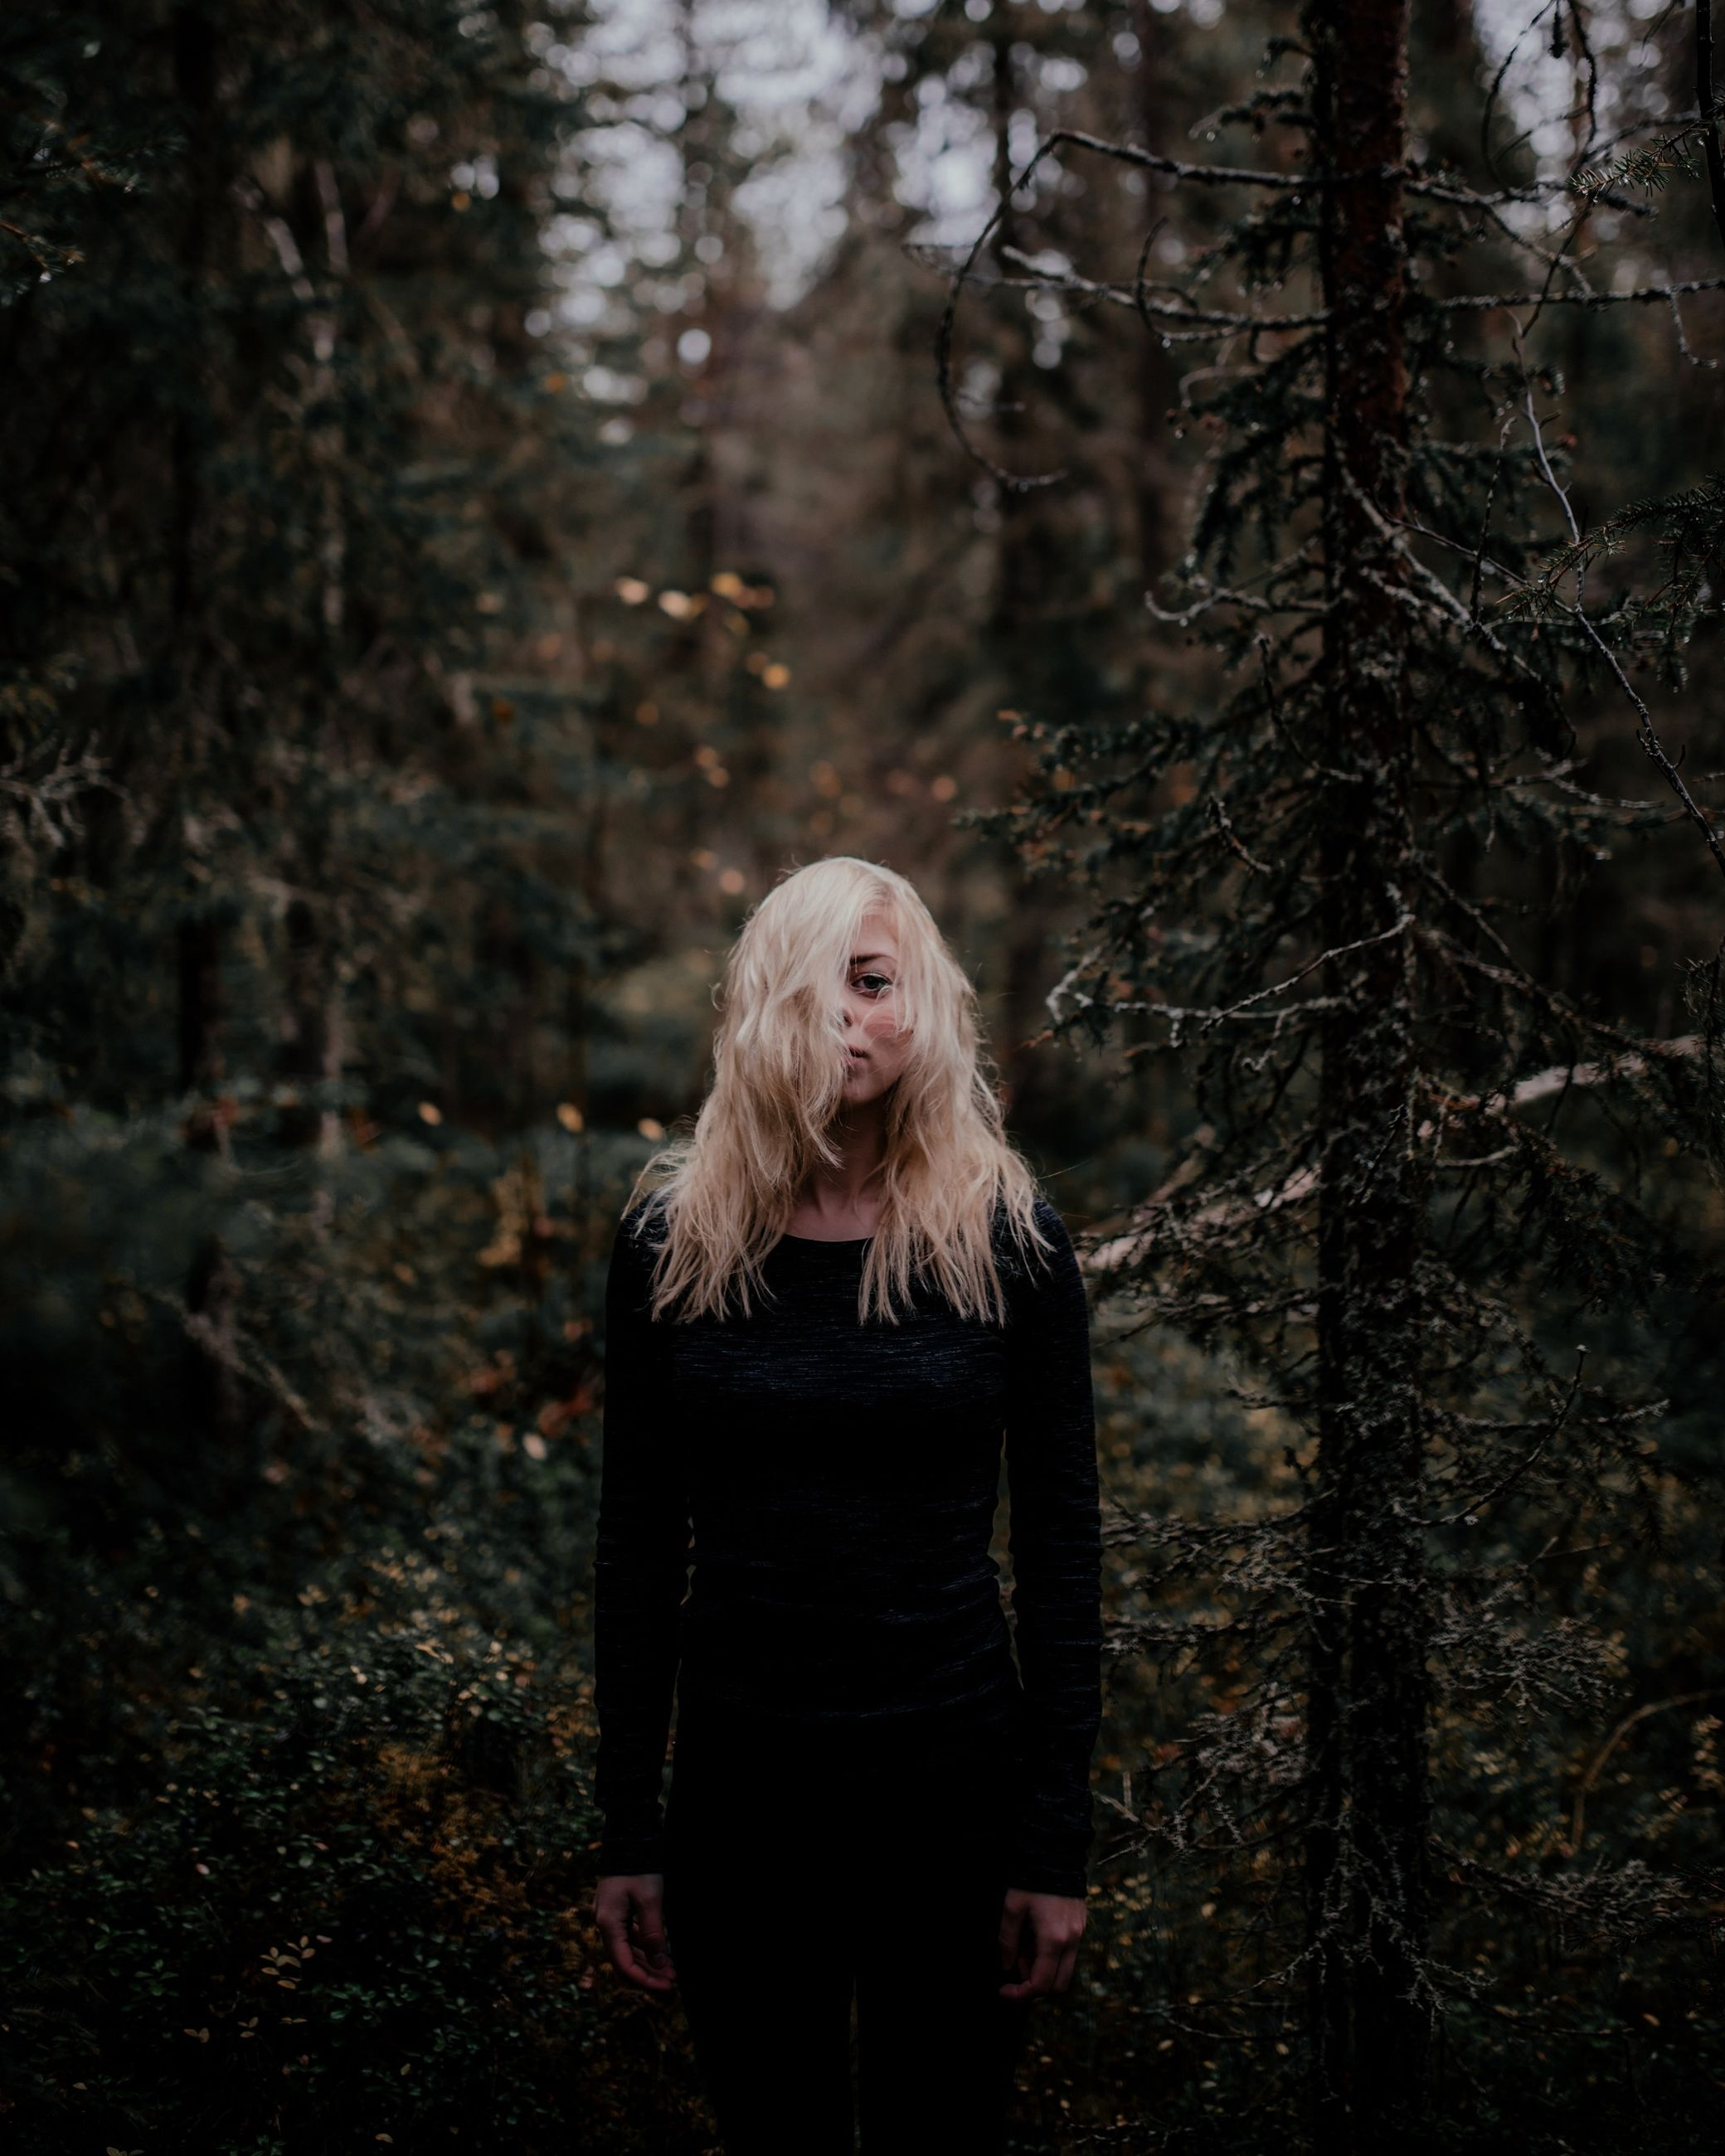 tree, forest, blond hair, hair, one person, long hair, hairstyle, young adult, land, standing, young women, three quarter length, front view, real people, leisure activity, nature, plant, women, woodland, outdoors, beautiful woman, contemplation, warm clothing